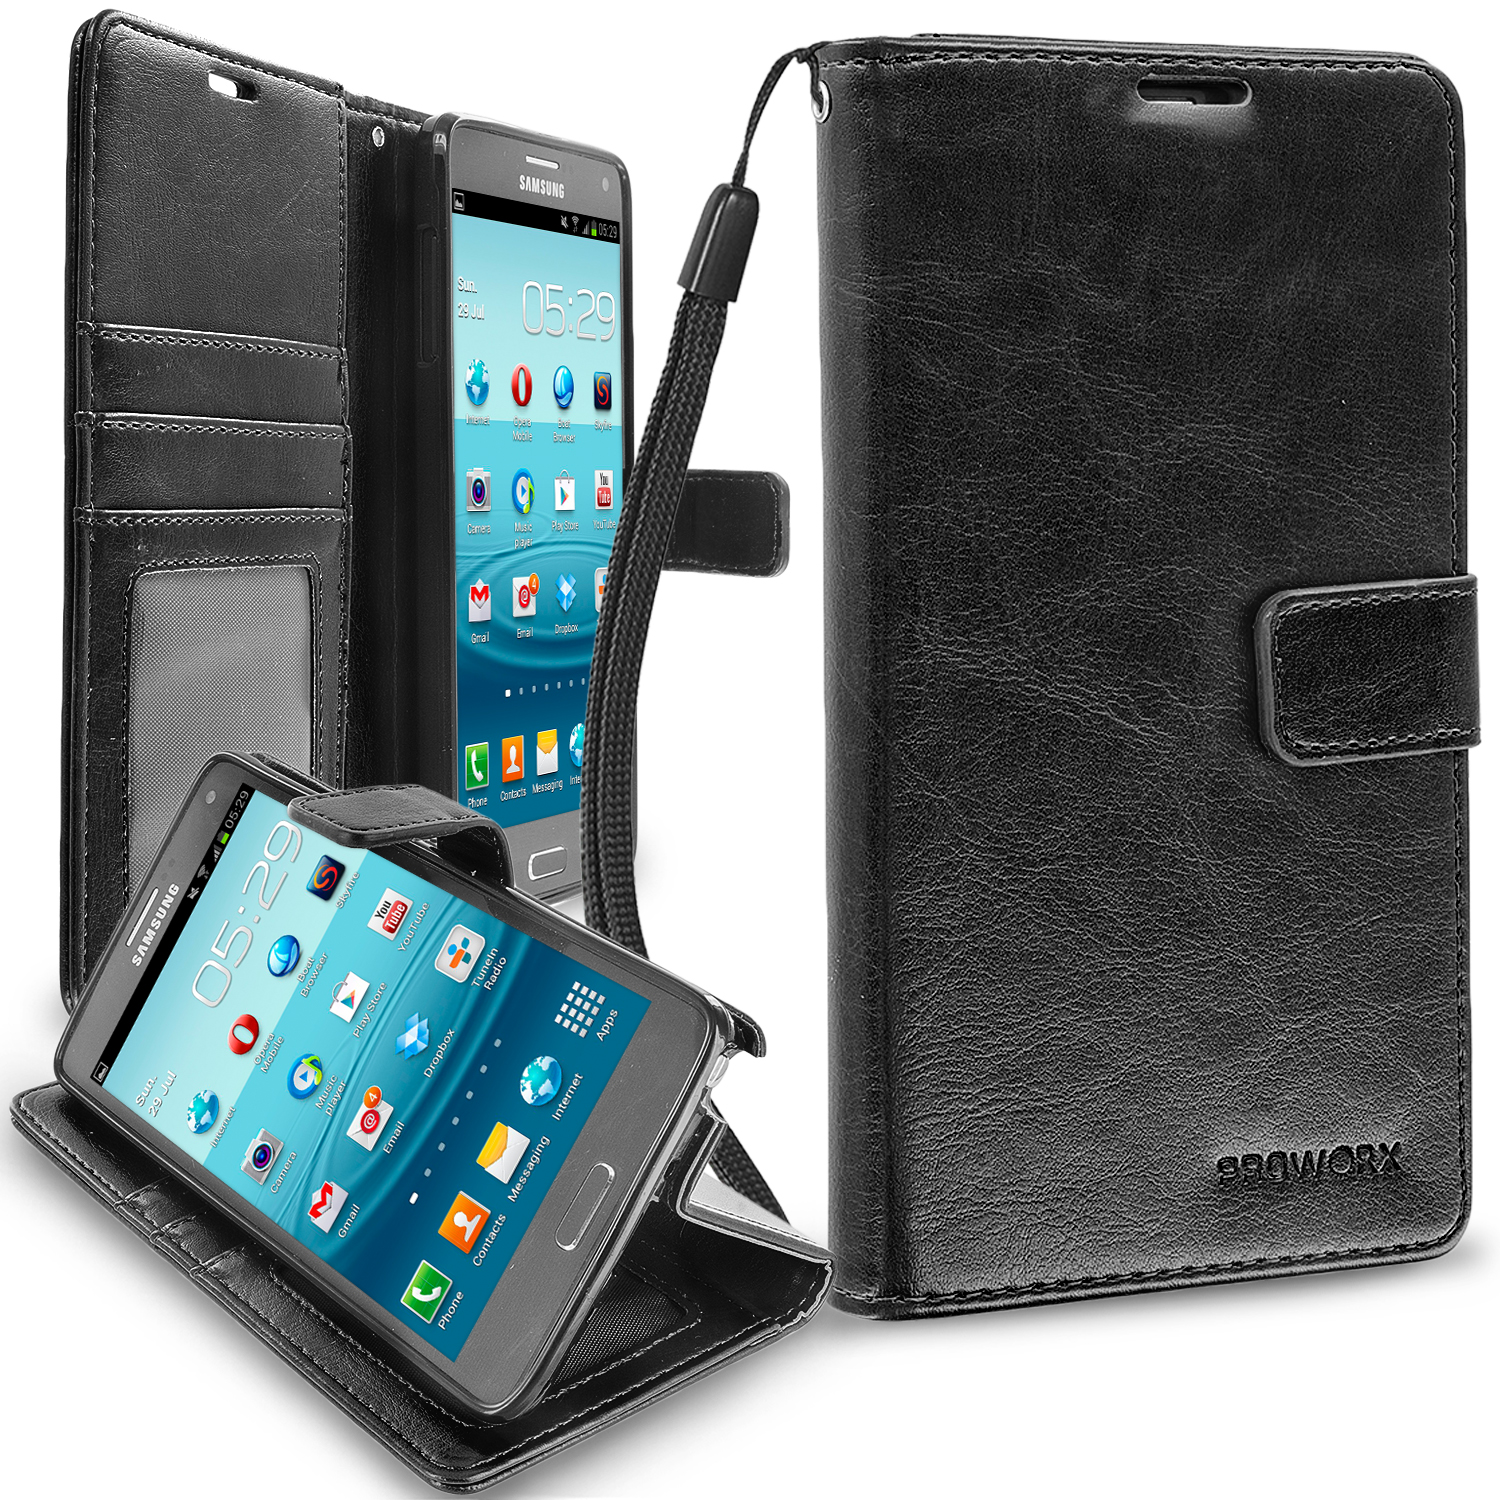 Samsung Galaxy Note 4 Black ProWorx Wallet Case Luxury PU Leather Case Cover With Card Slots & Stand